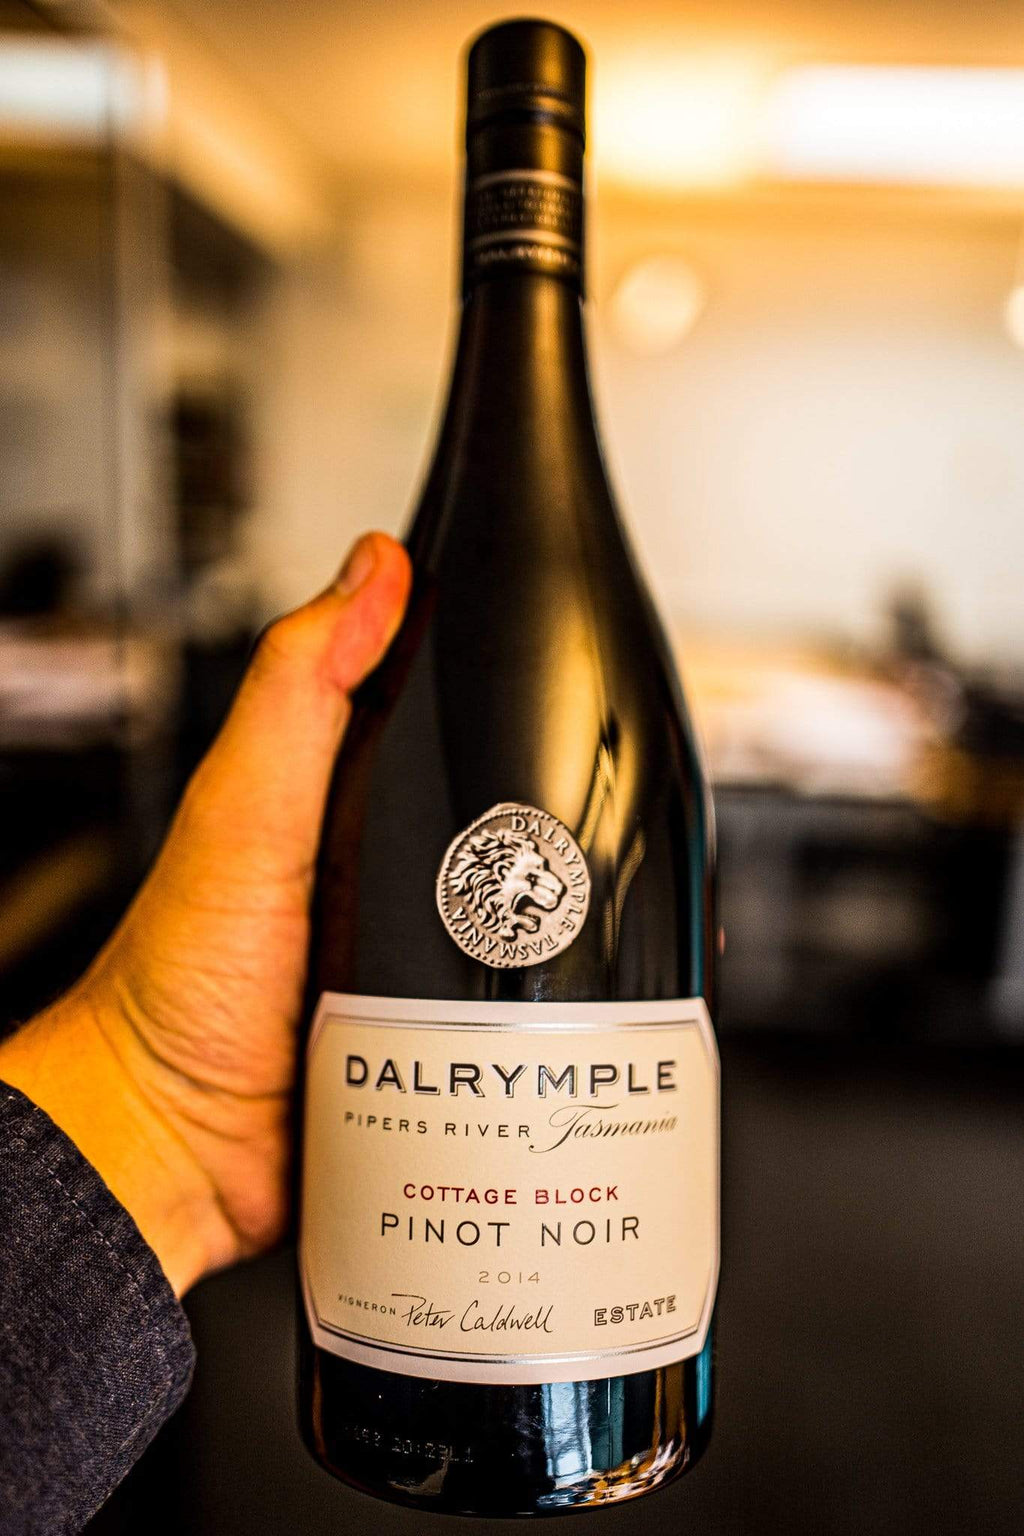 Dalrymple Rødvin Dalrymple Pipers River Cottage Block Pinot Noir 2014